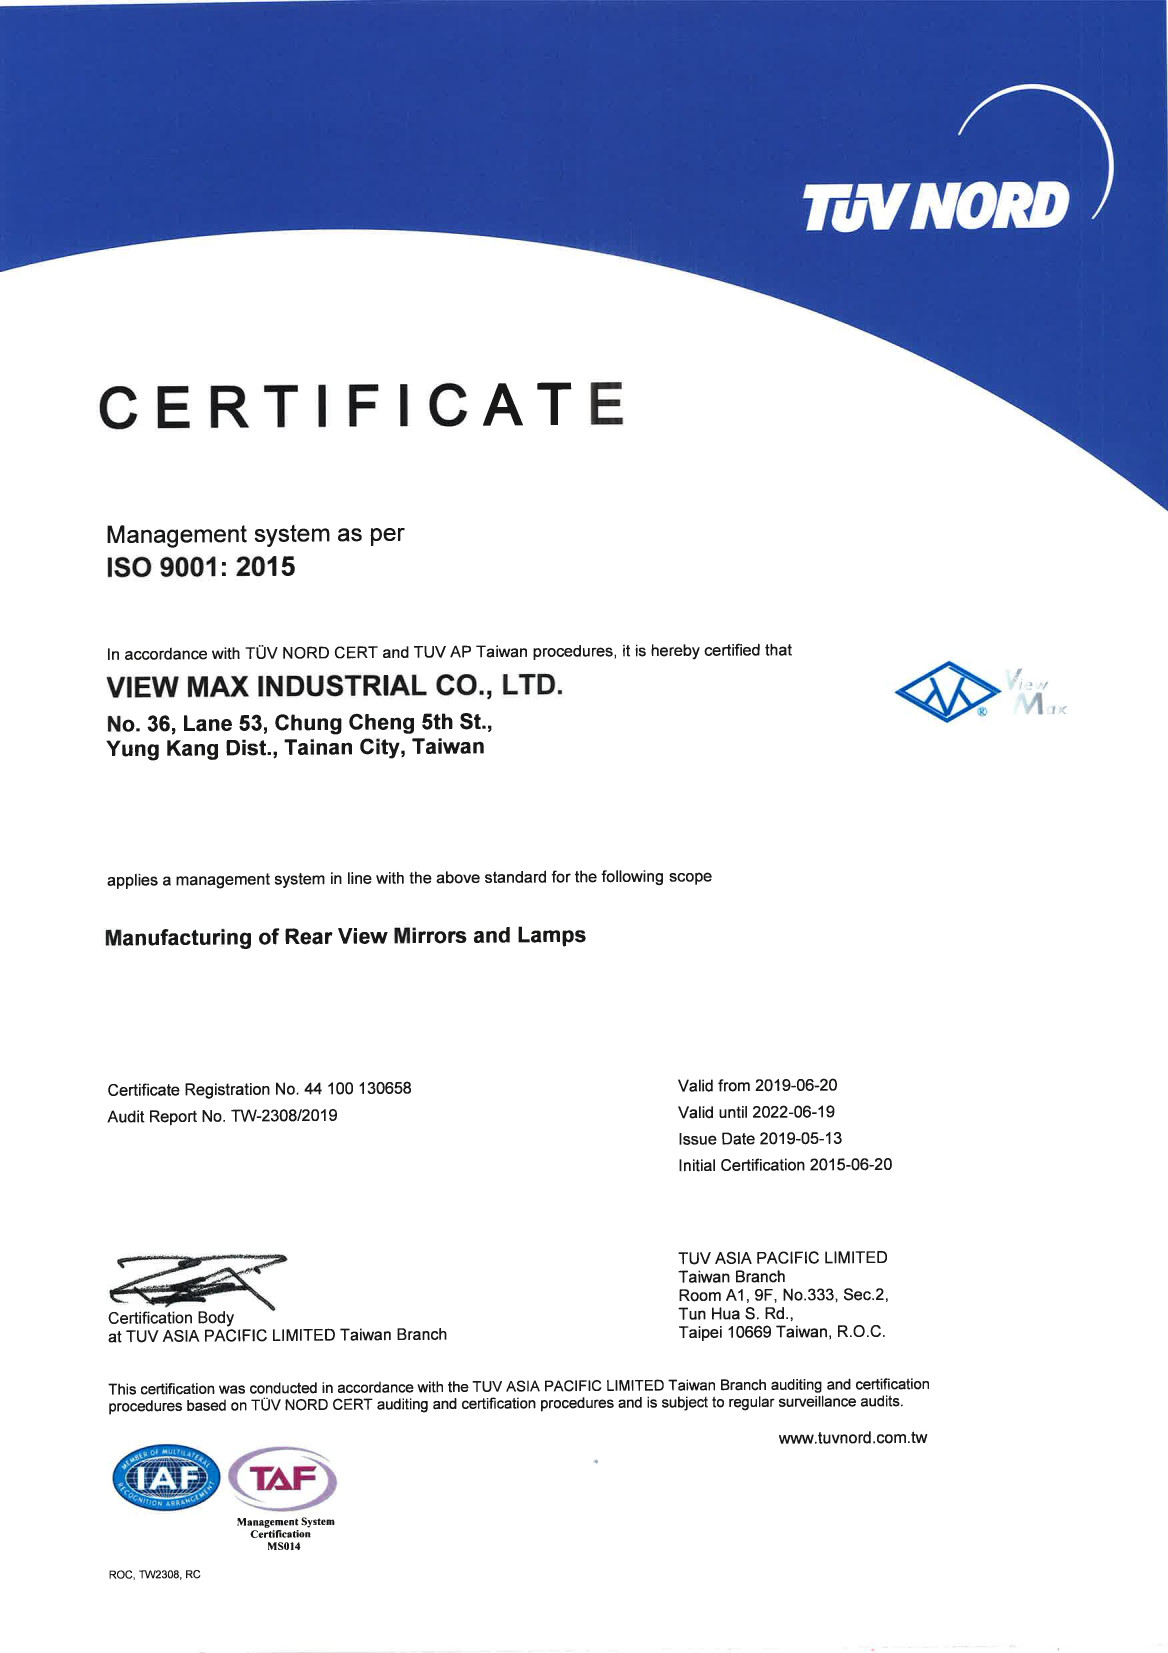 View Max ISO certificate